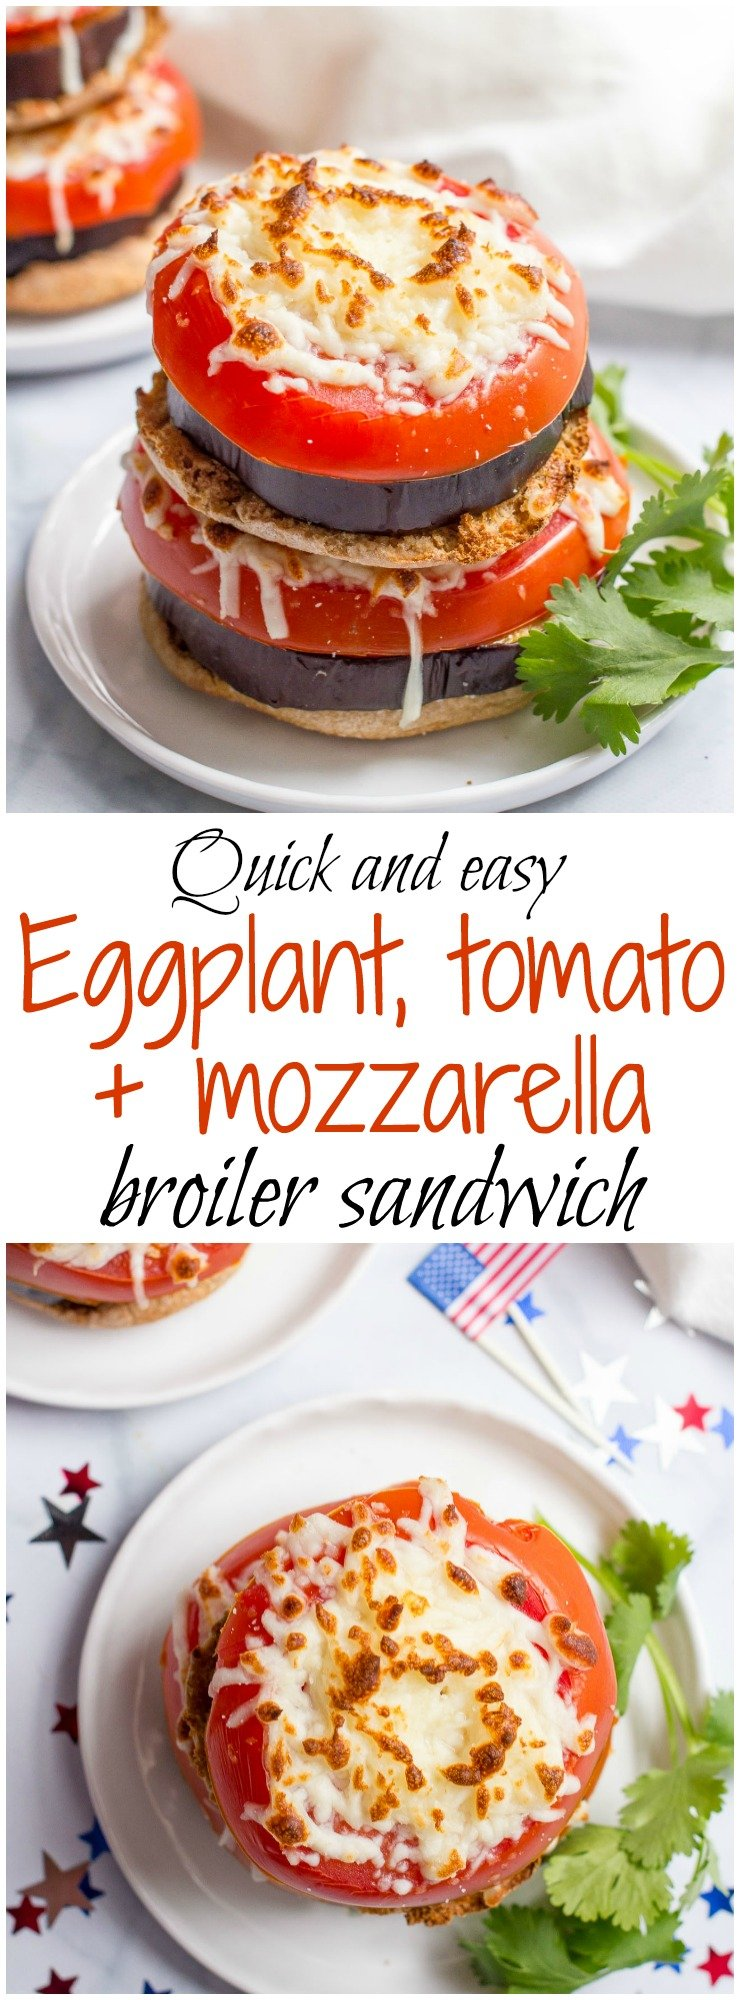 Quick and easy eggplant tomato and mozzarella broiler sandwich - a great vegetarian lunch or light dinner - and a healthy red, white and blue festive meal!